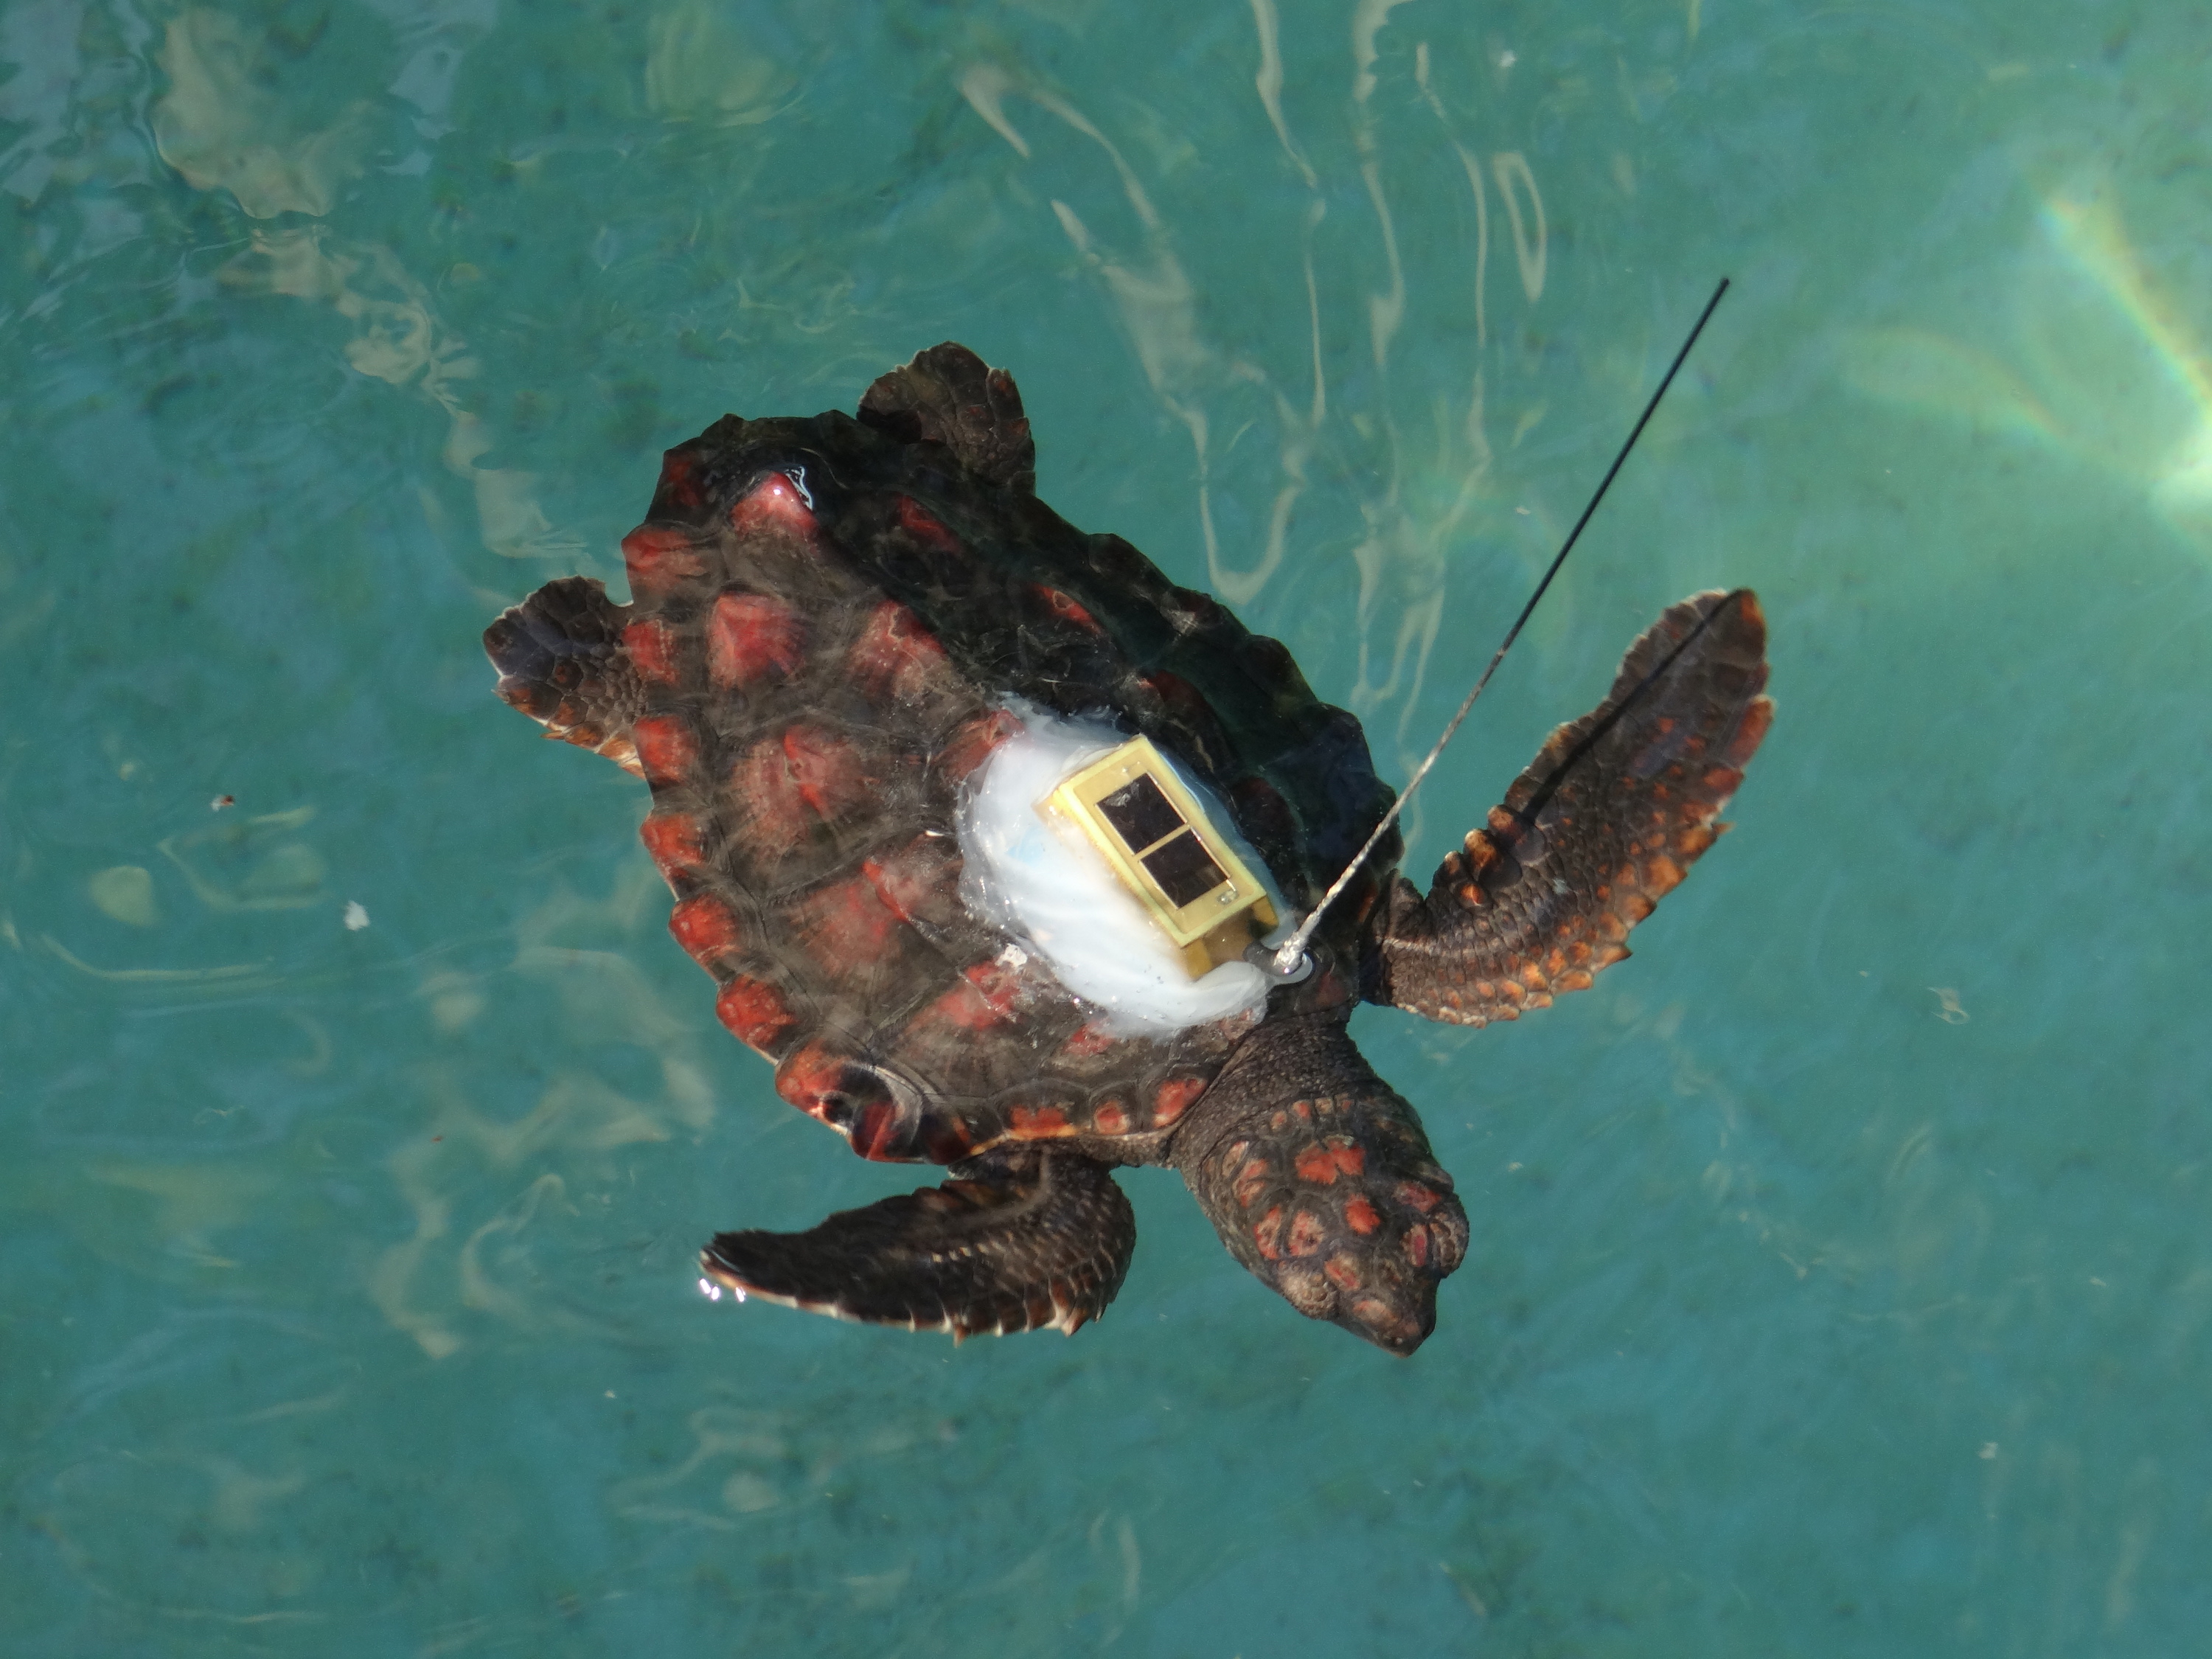 Scientists attached solar-powered satellite tags to the turtles shells in the laboratory. Image credit: NOAA